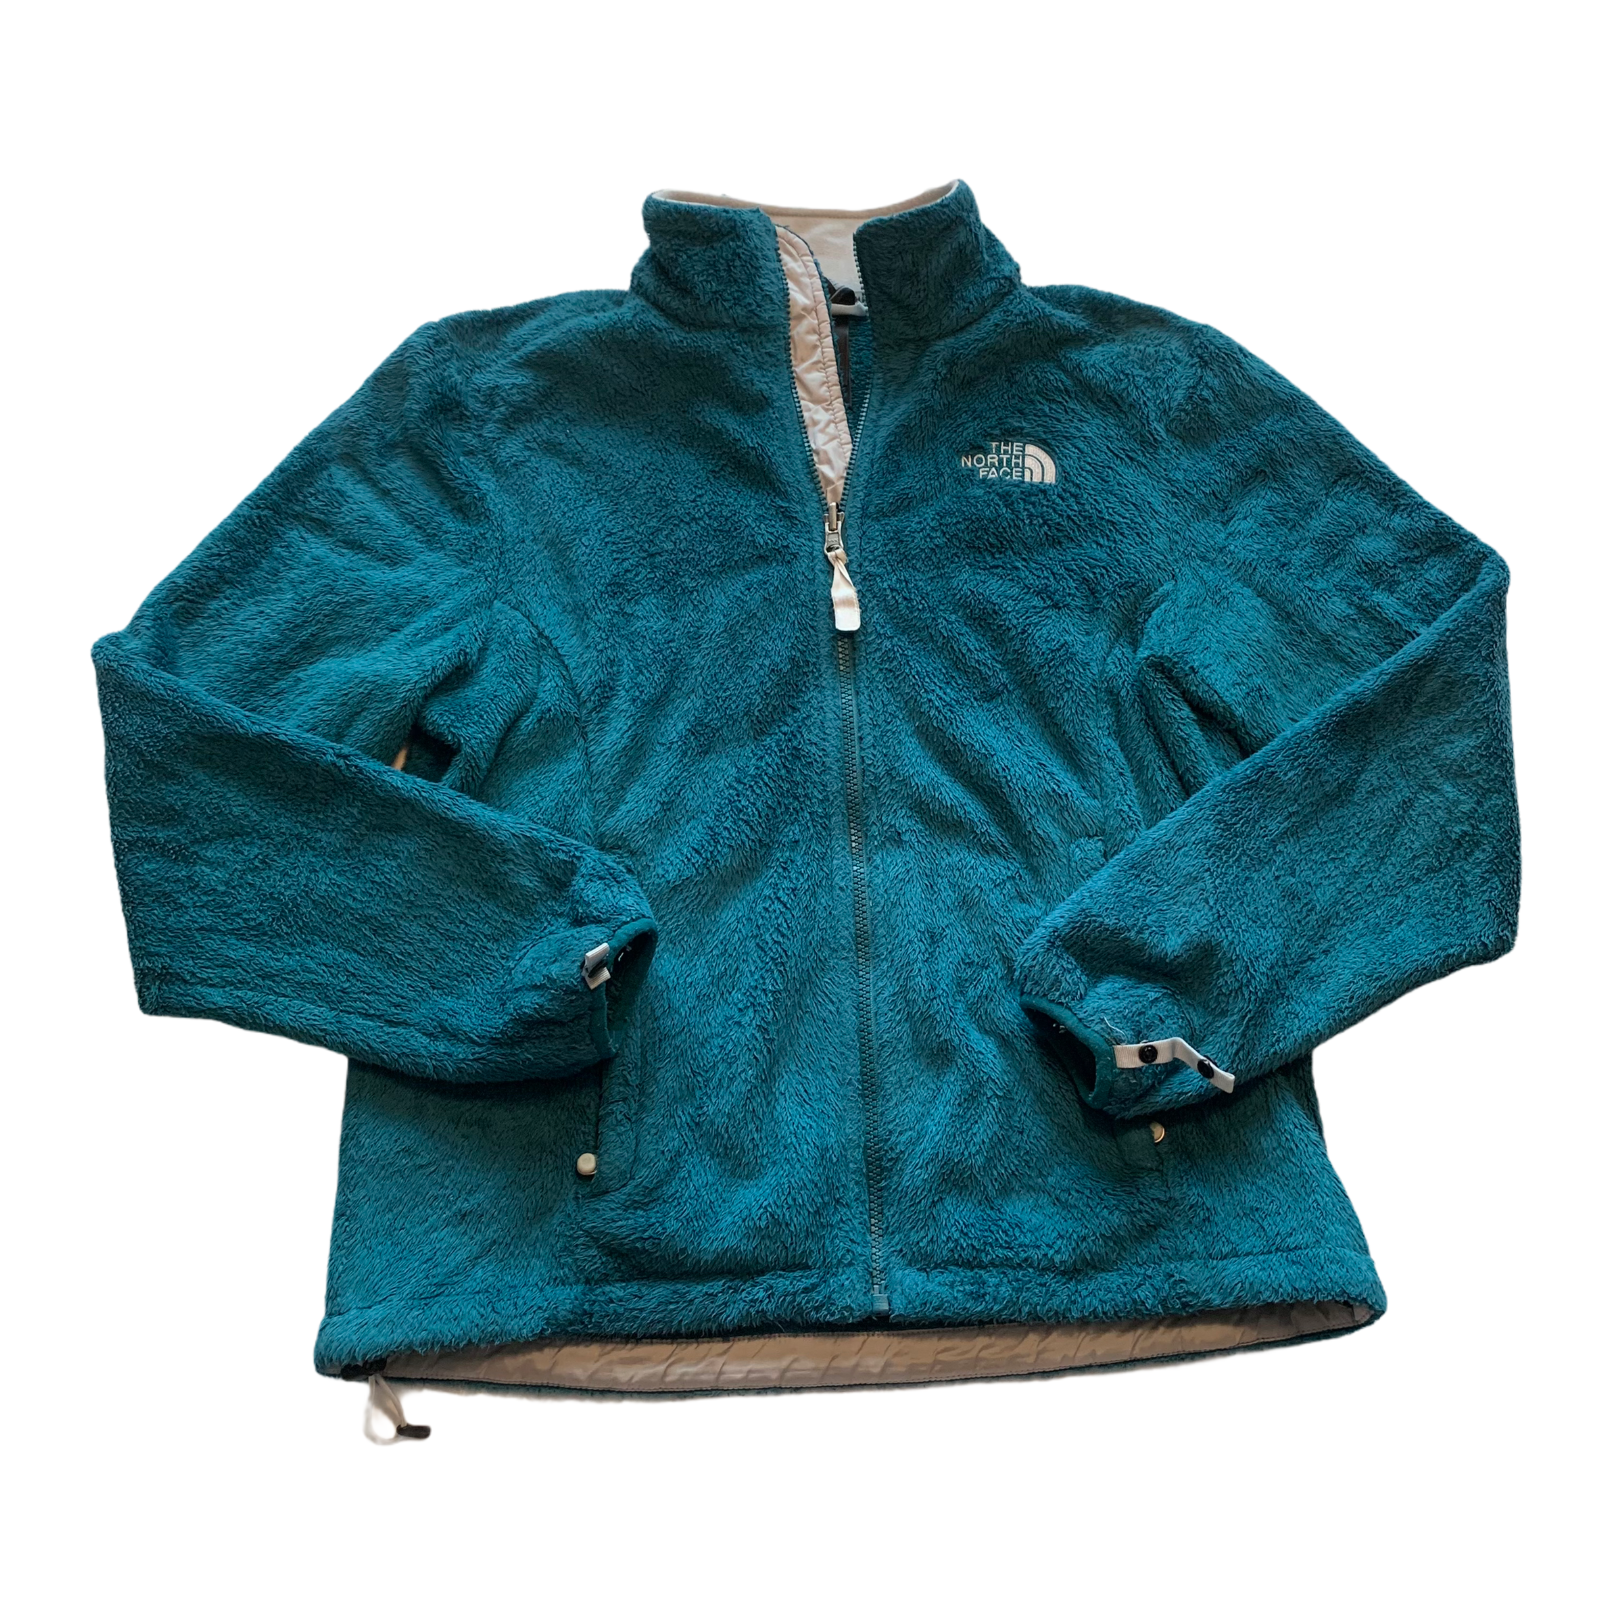 The North Face Jacket Sweater Adult Small Green Jacket Outdoors Womens U201